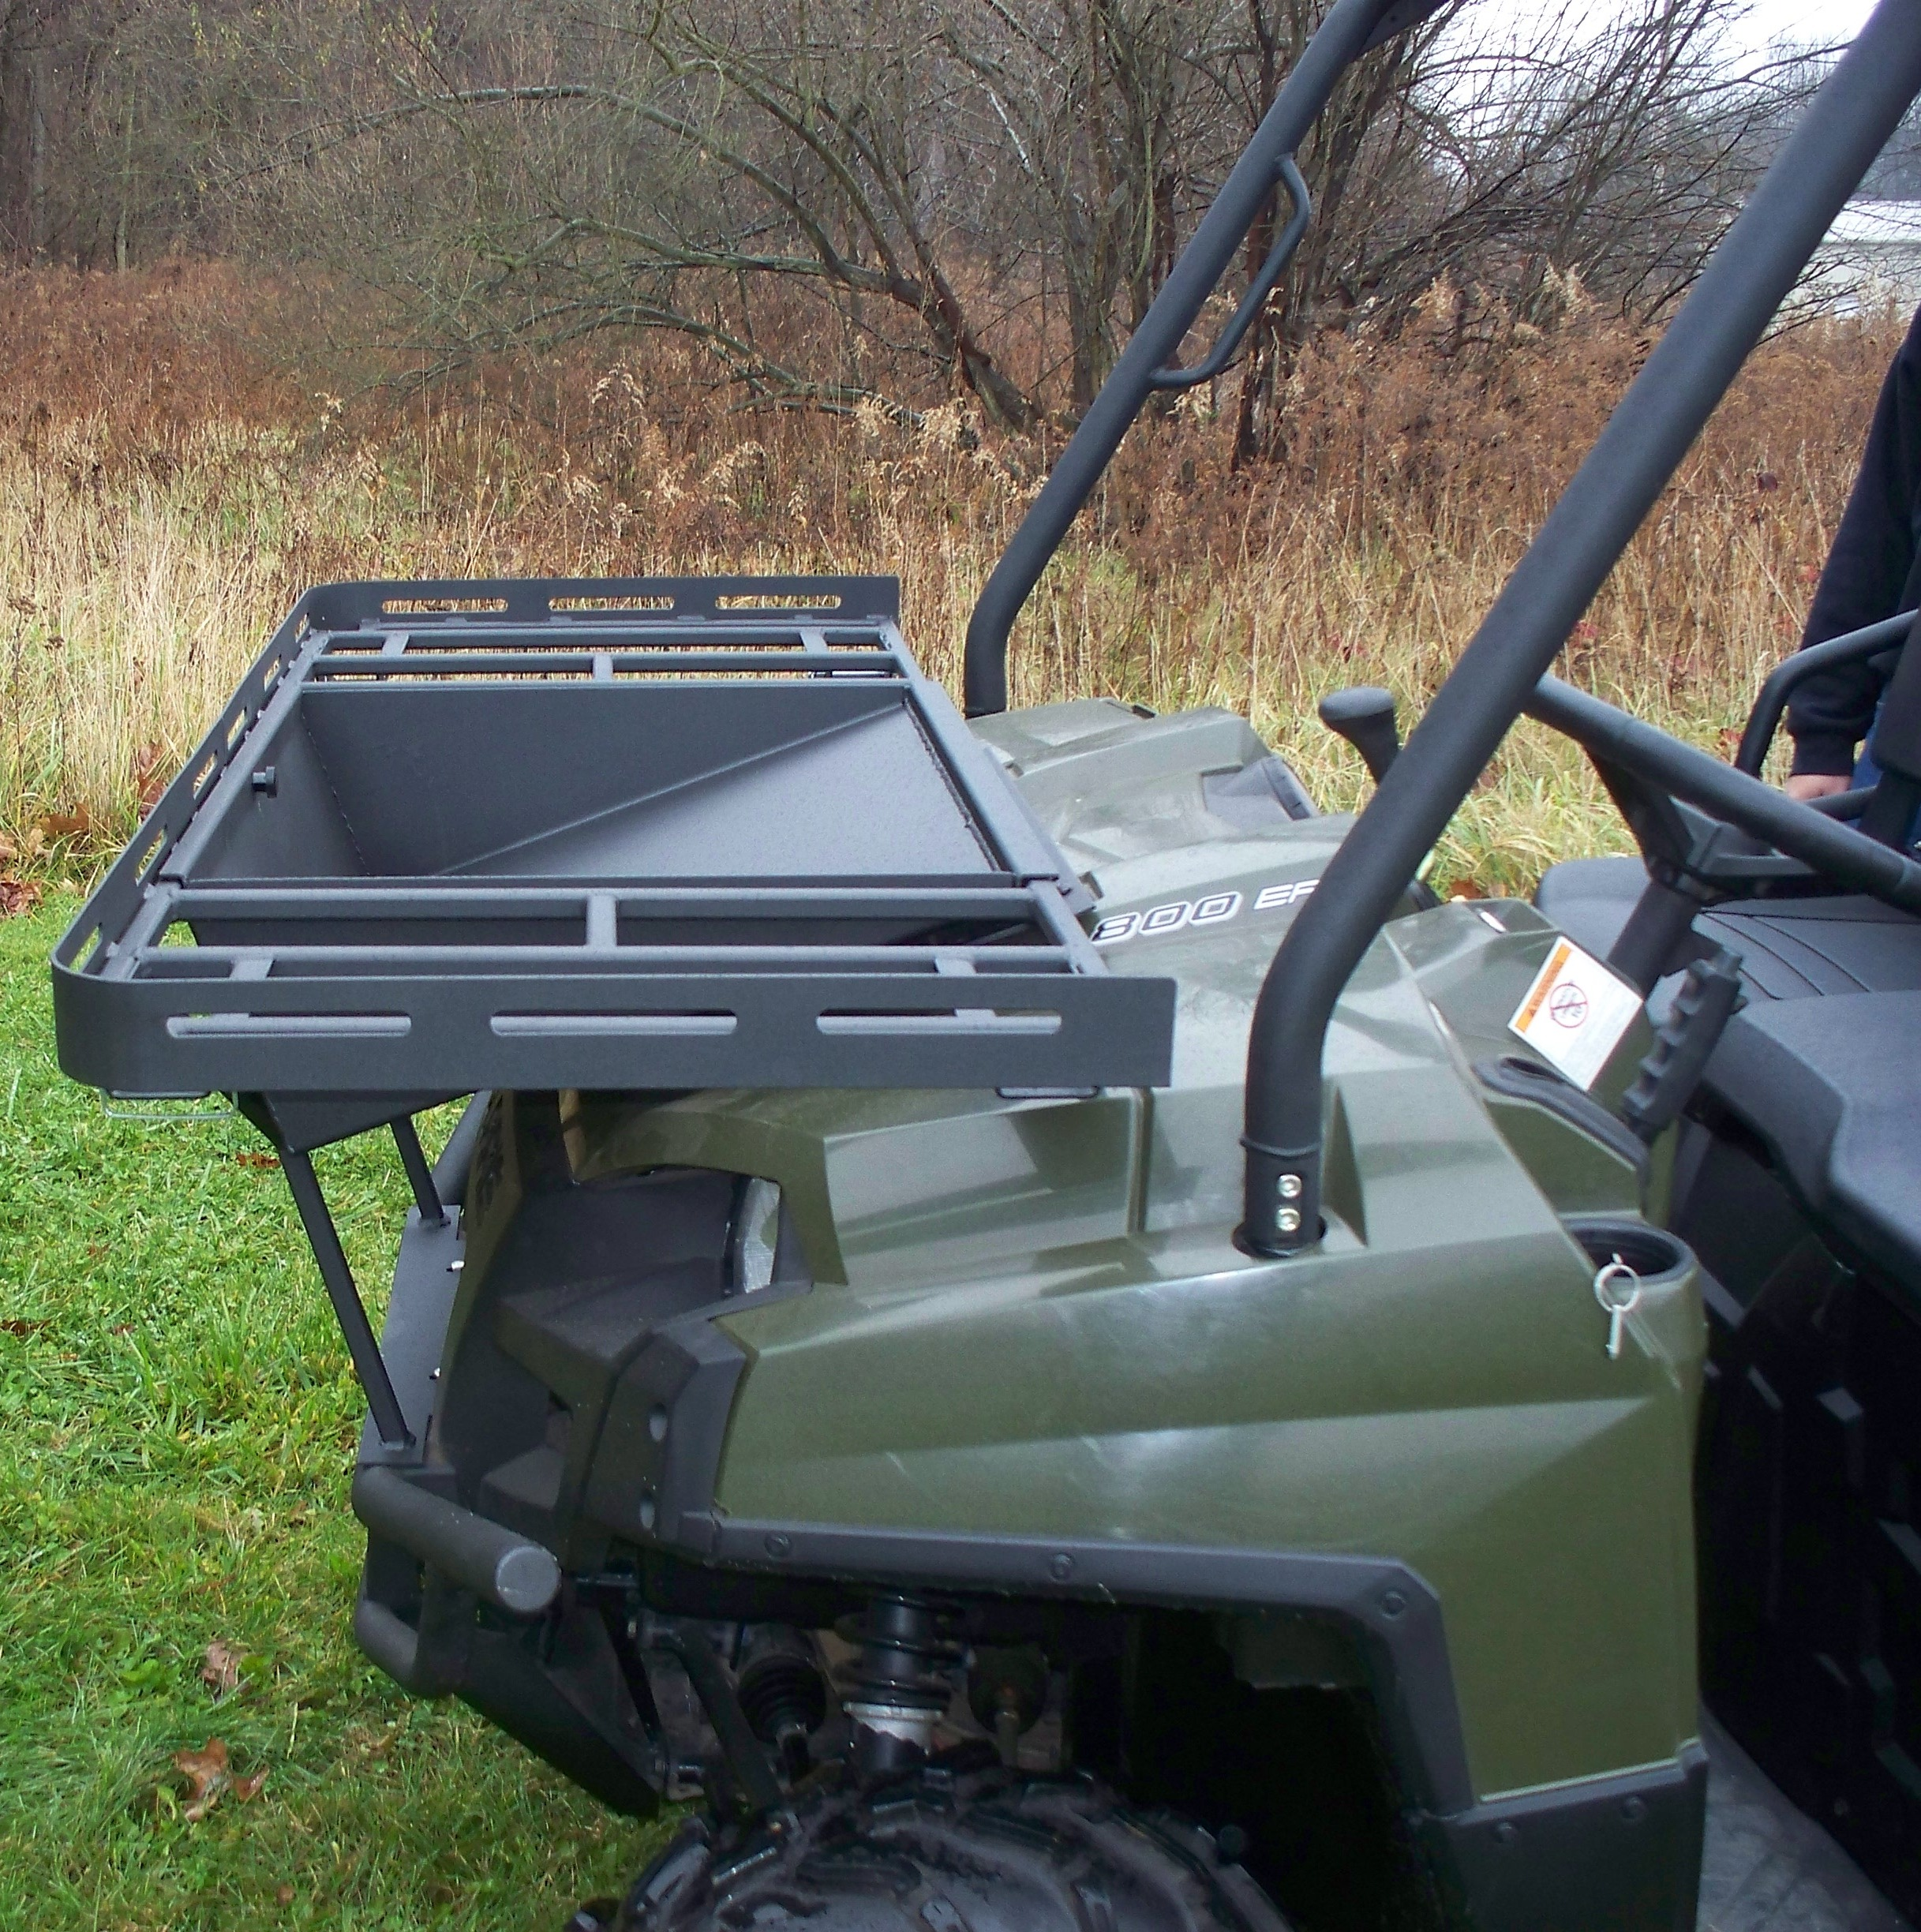 Military Asap911 All Terrain Utv Emergency Vehicles